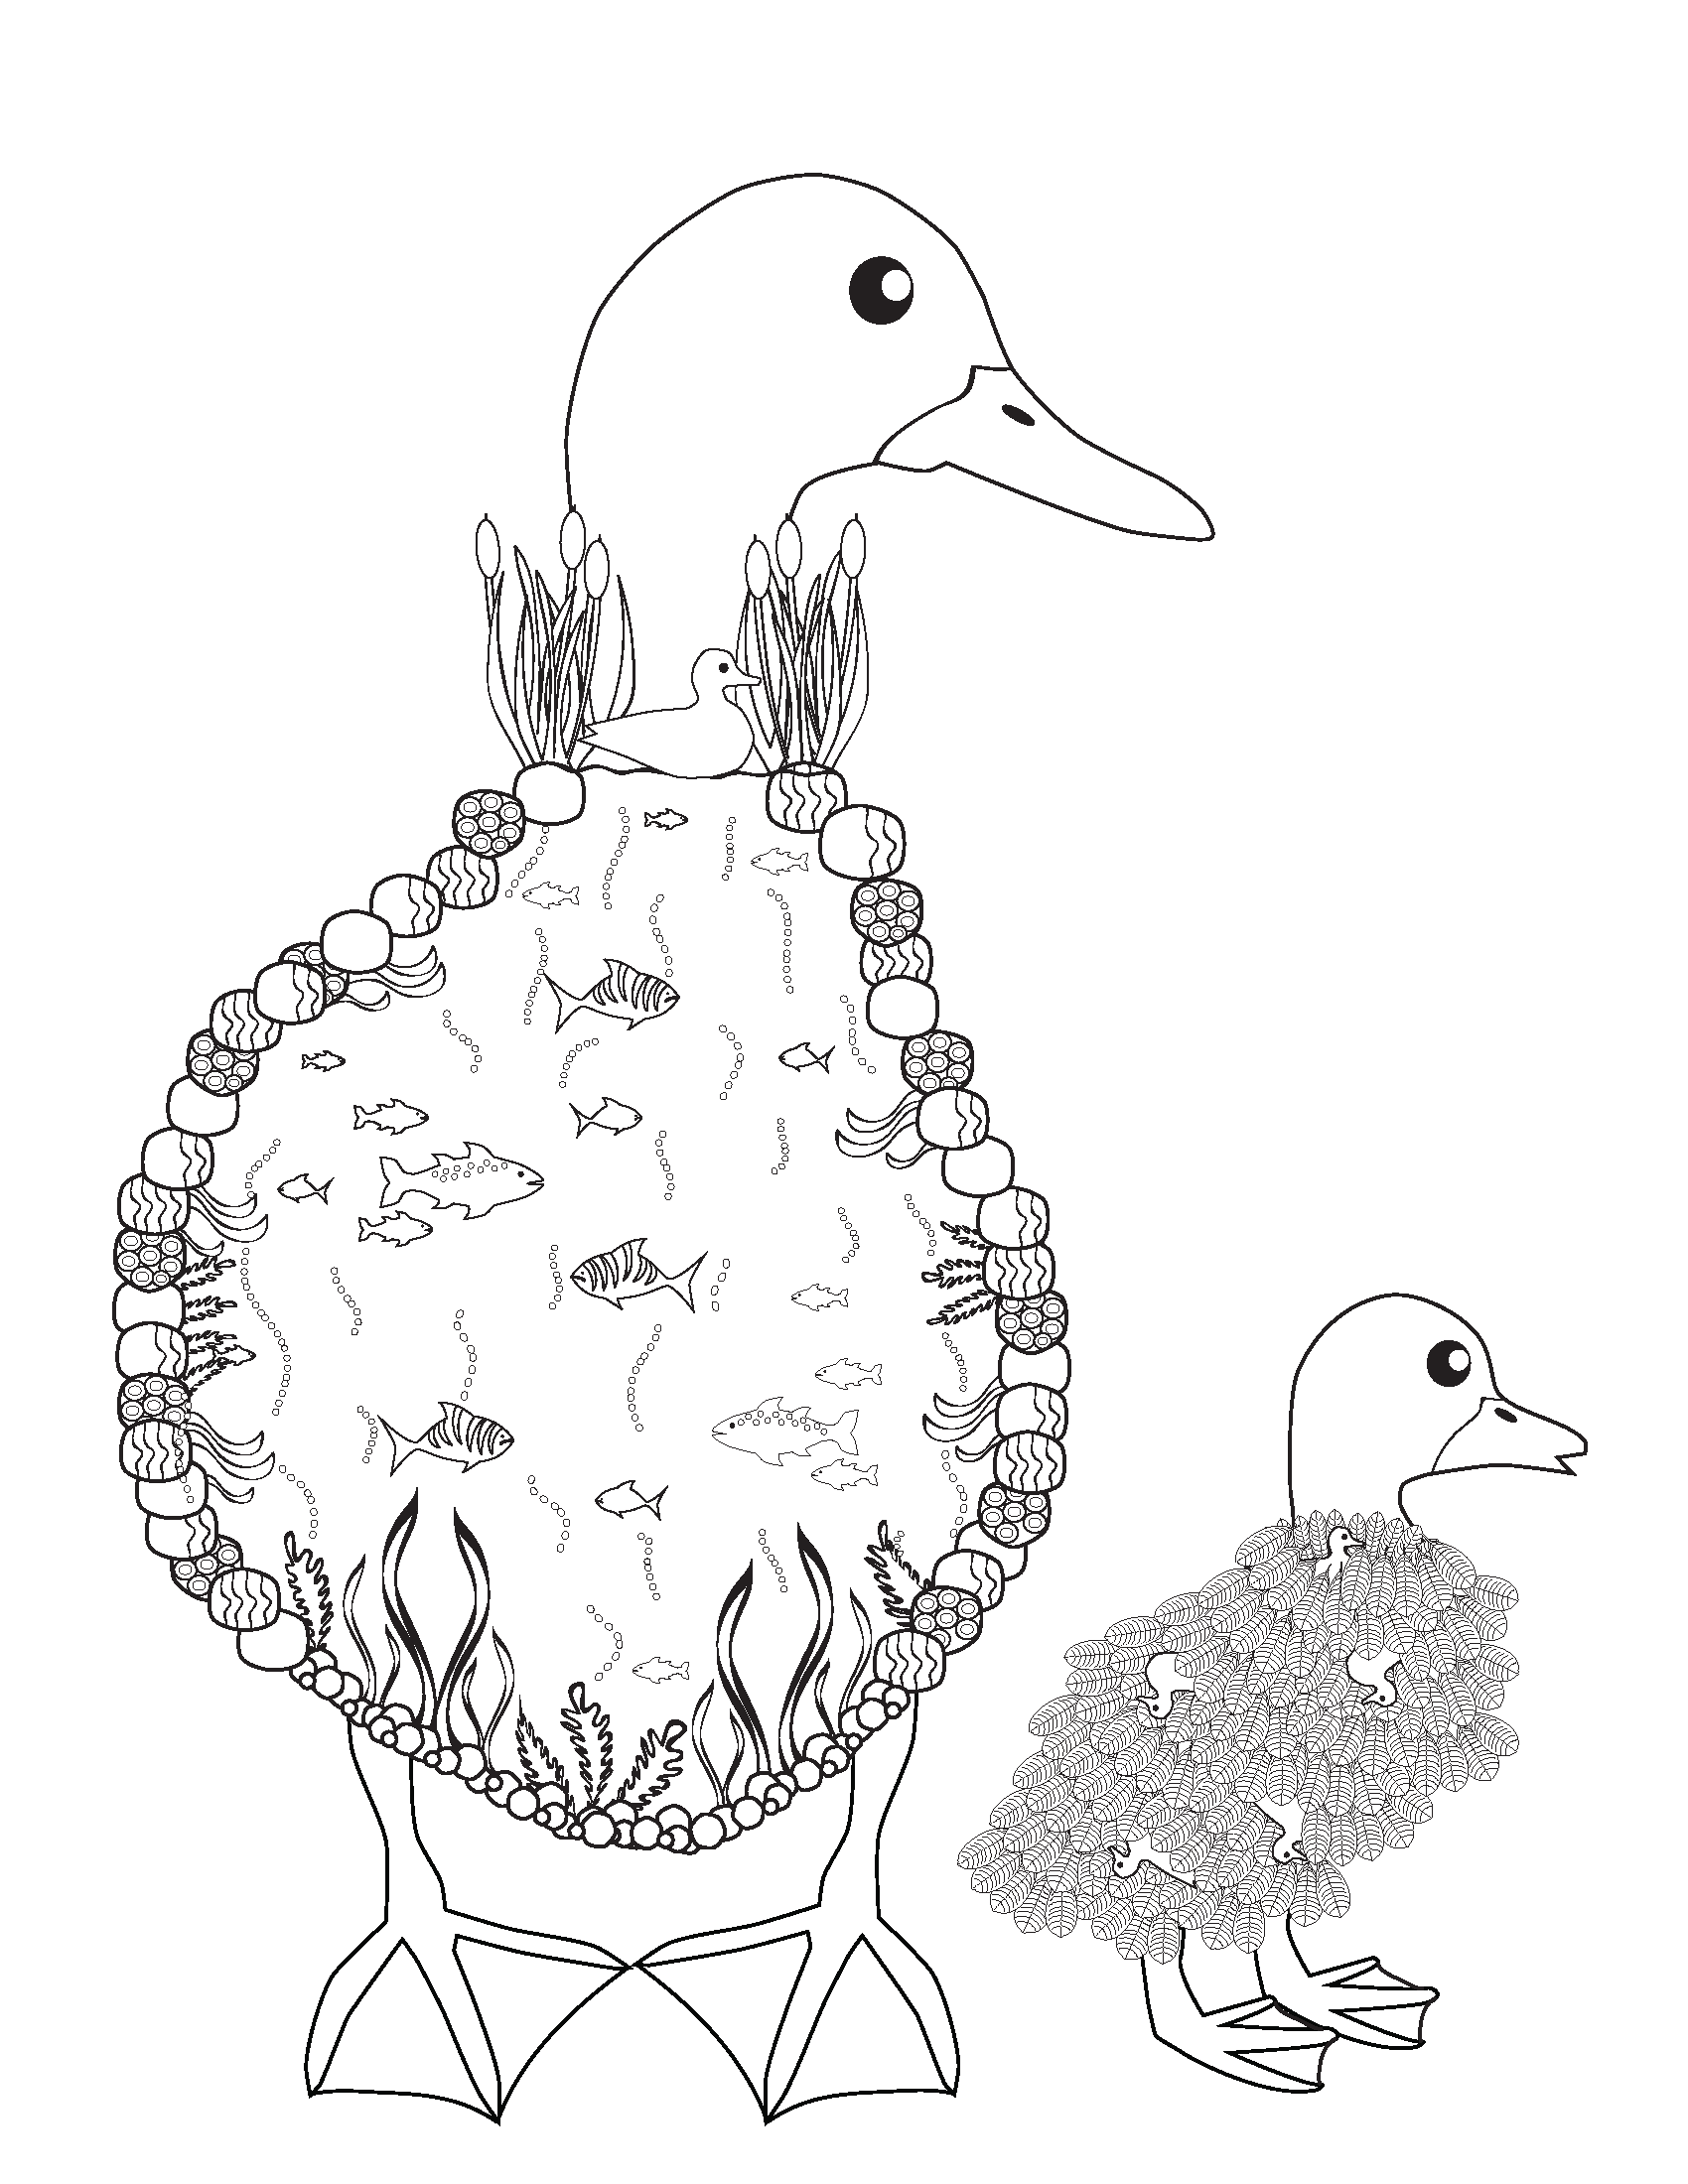 Ducks Coloring Book page